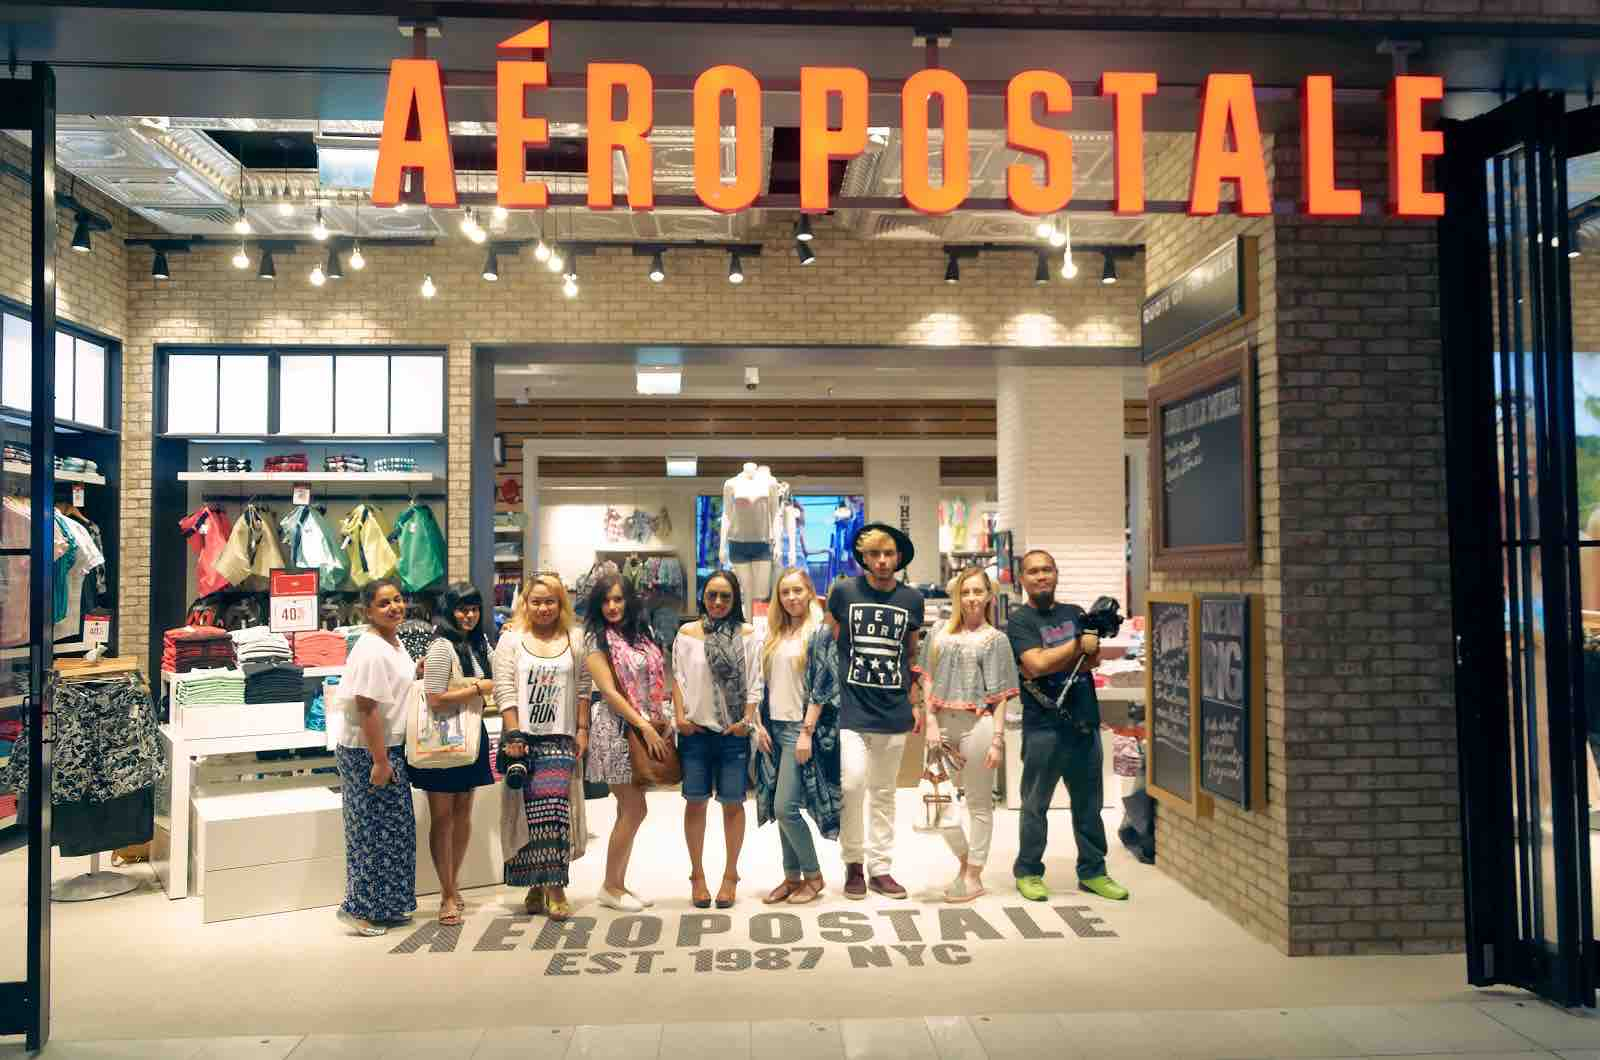 image regarding Mall America Printable Coupons titled Shopping mall of the us aeropostale - Evanston illinois eating places